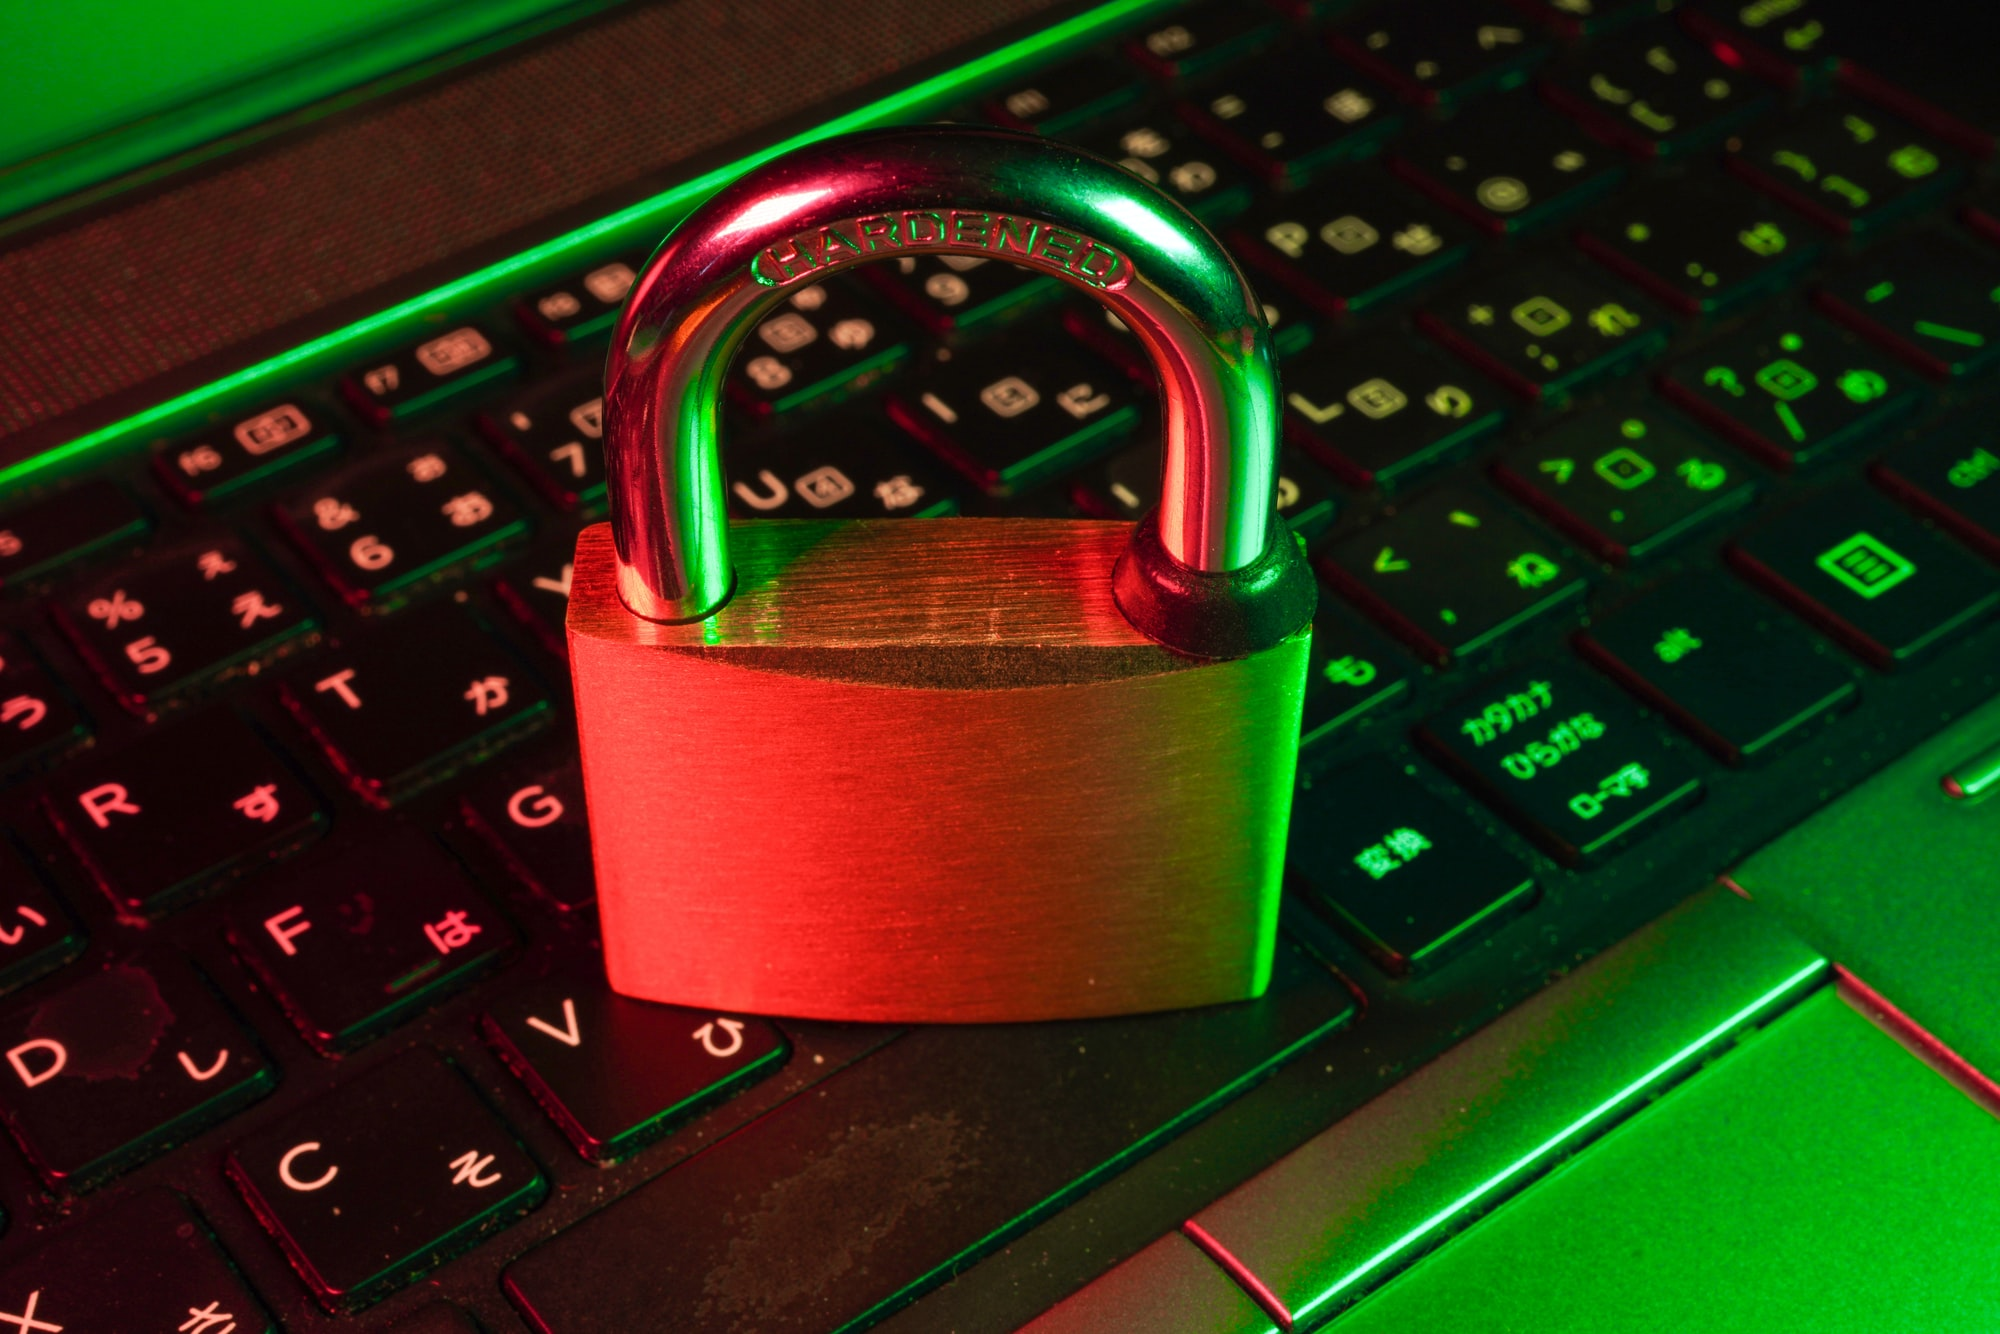 Cybersecurity and the safety of internet